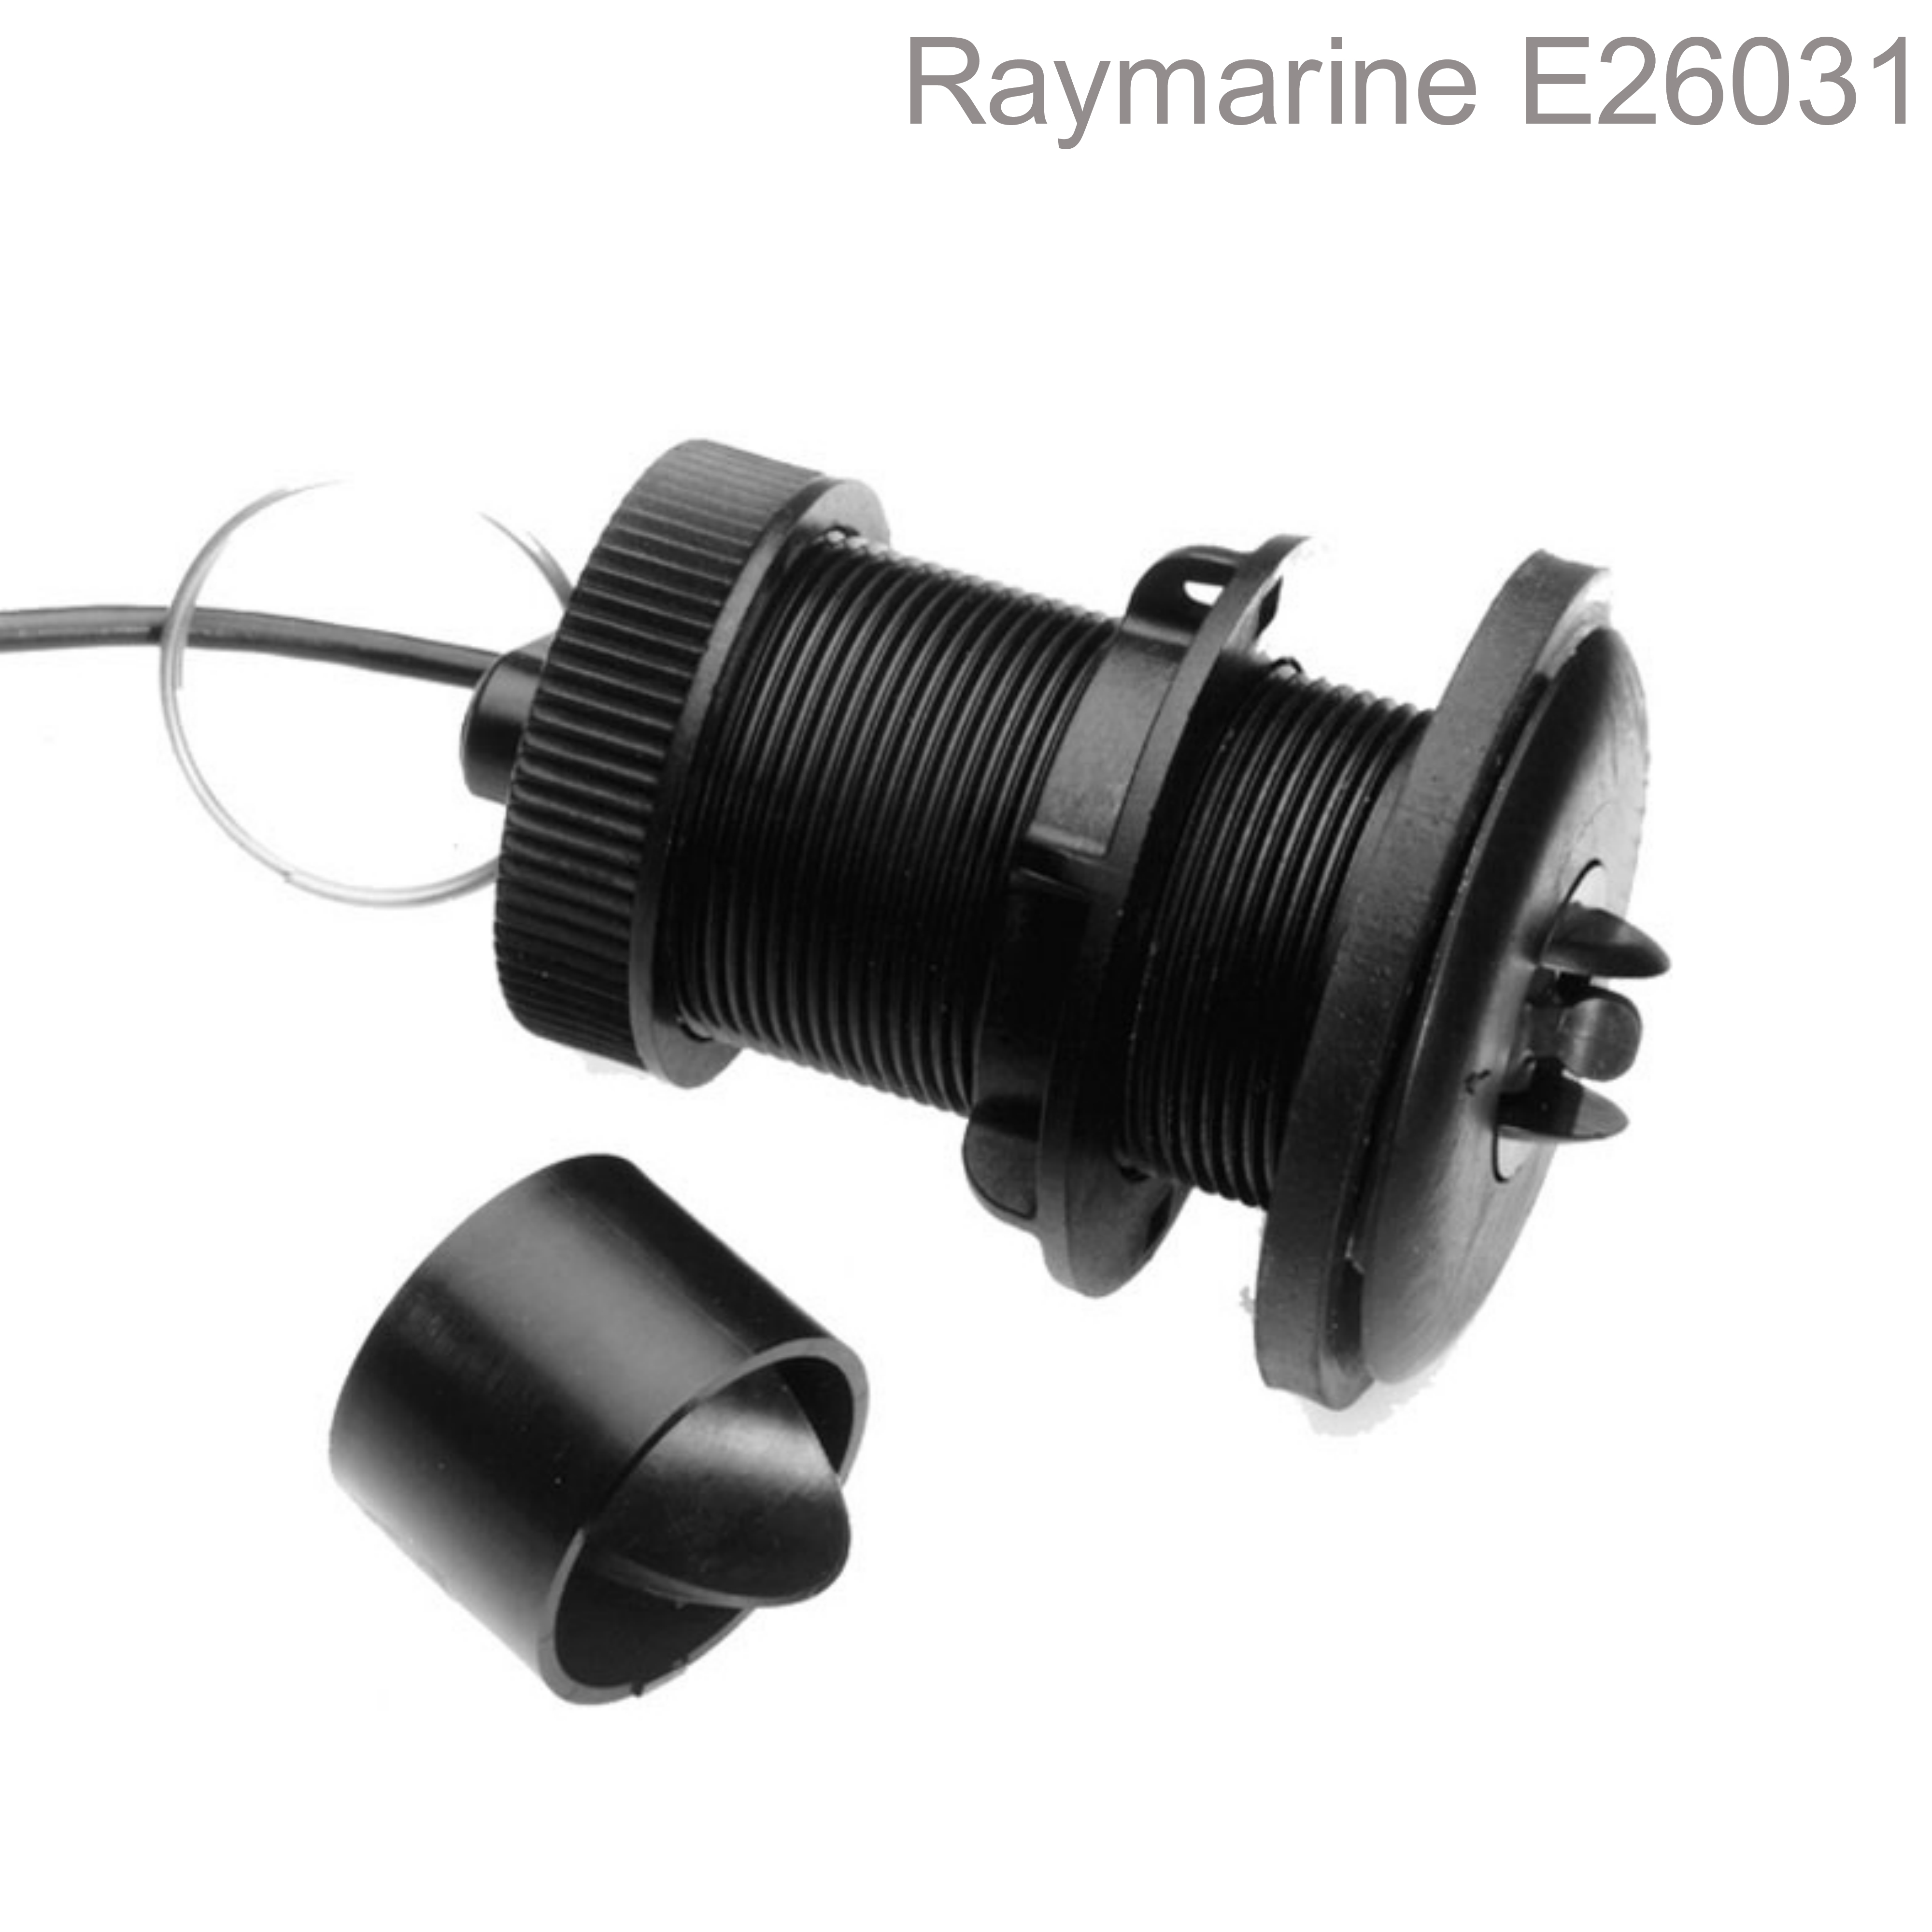 Raymarine ST800/P120 Plastic Thru-Hull LP Speed Transducer & 14m Cable|Retractable